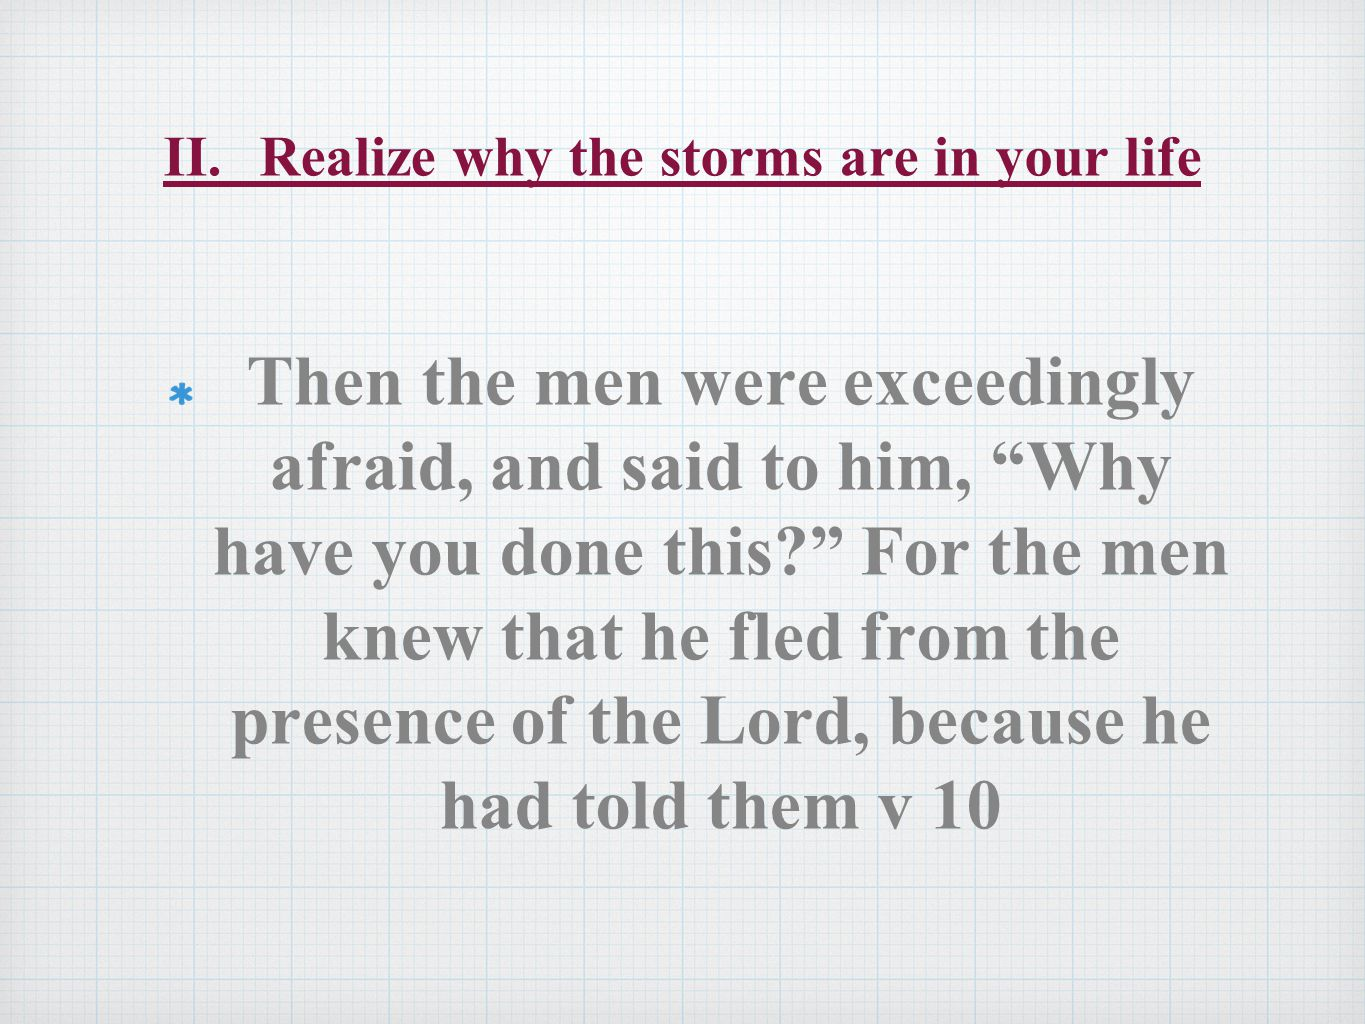 II. Realize why the storms are in your life